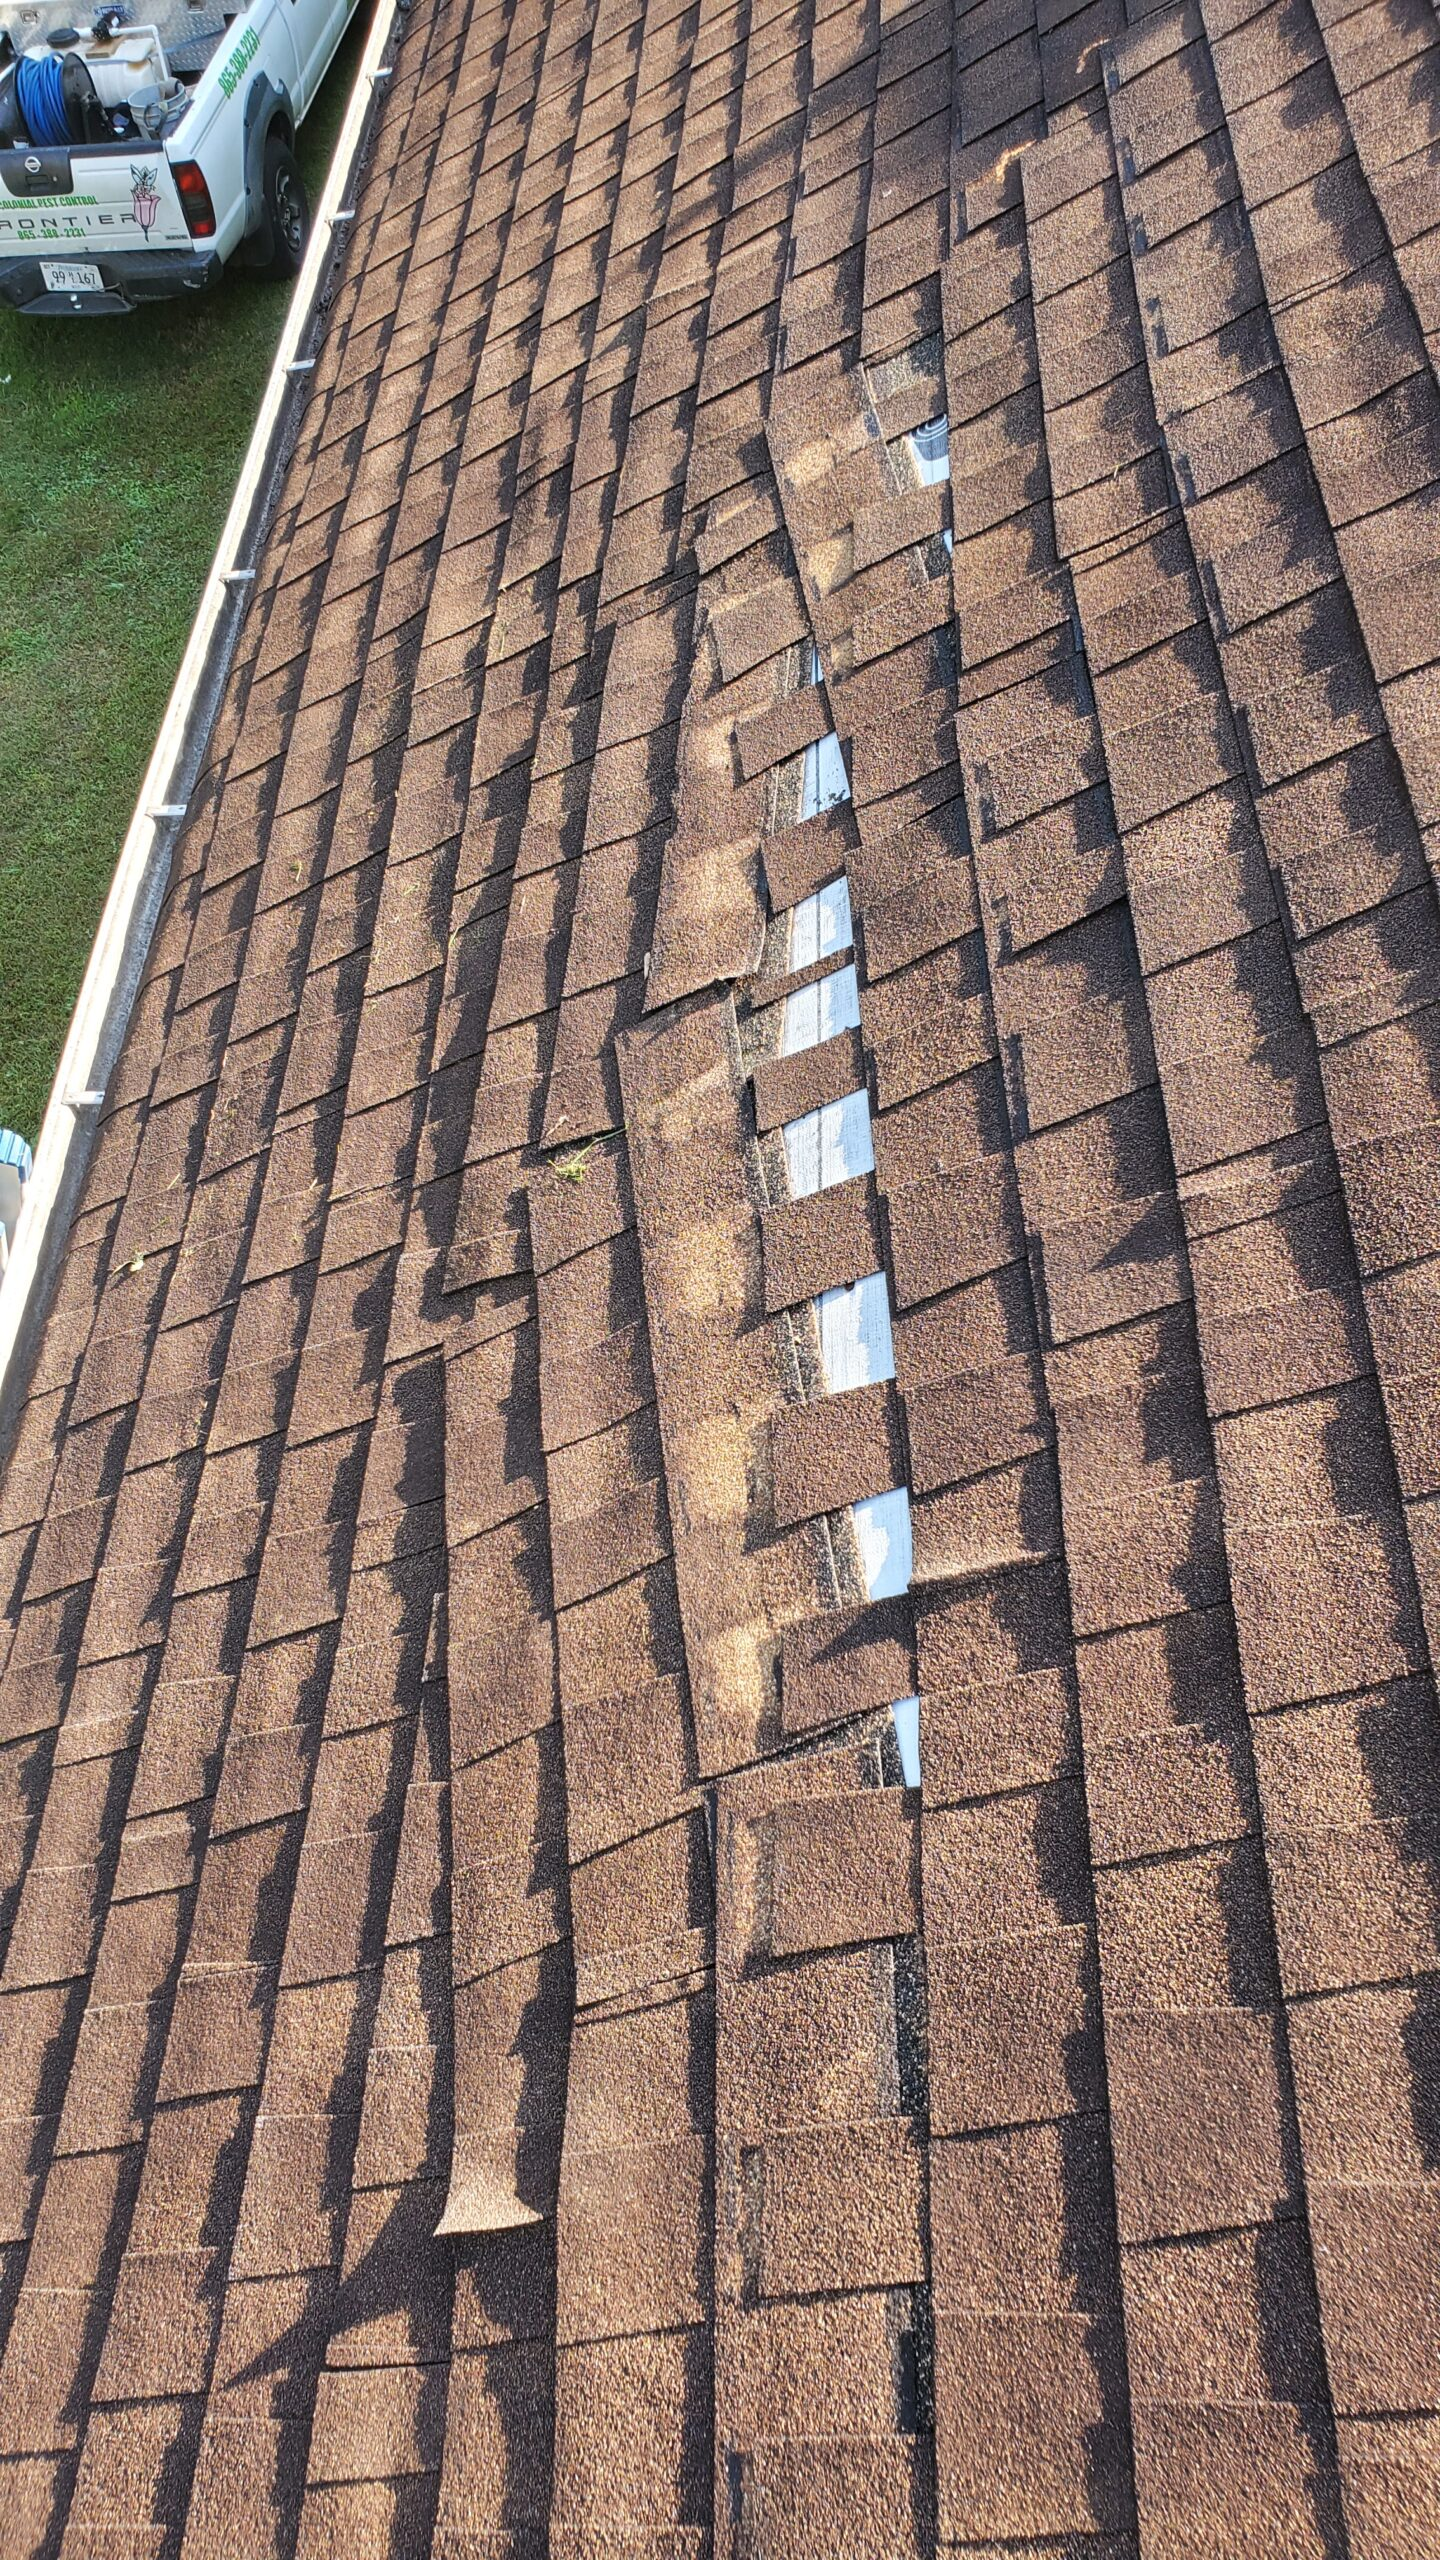 This is a picture of Orange coloured shingles that are beginning to slide off the roof